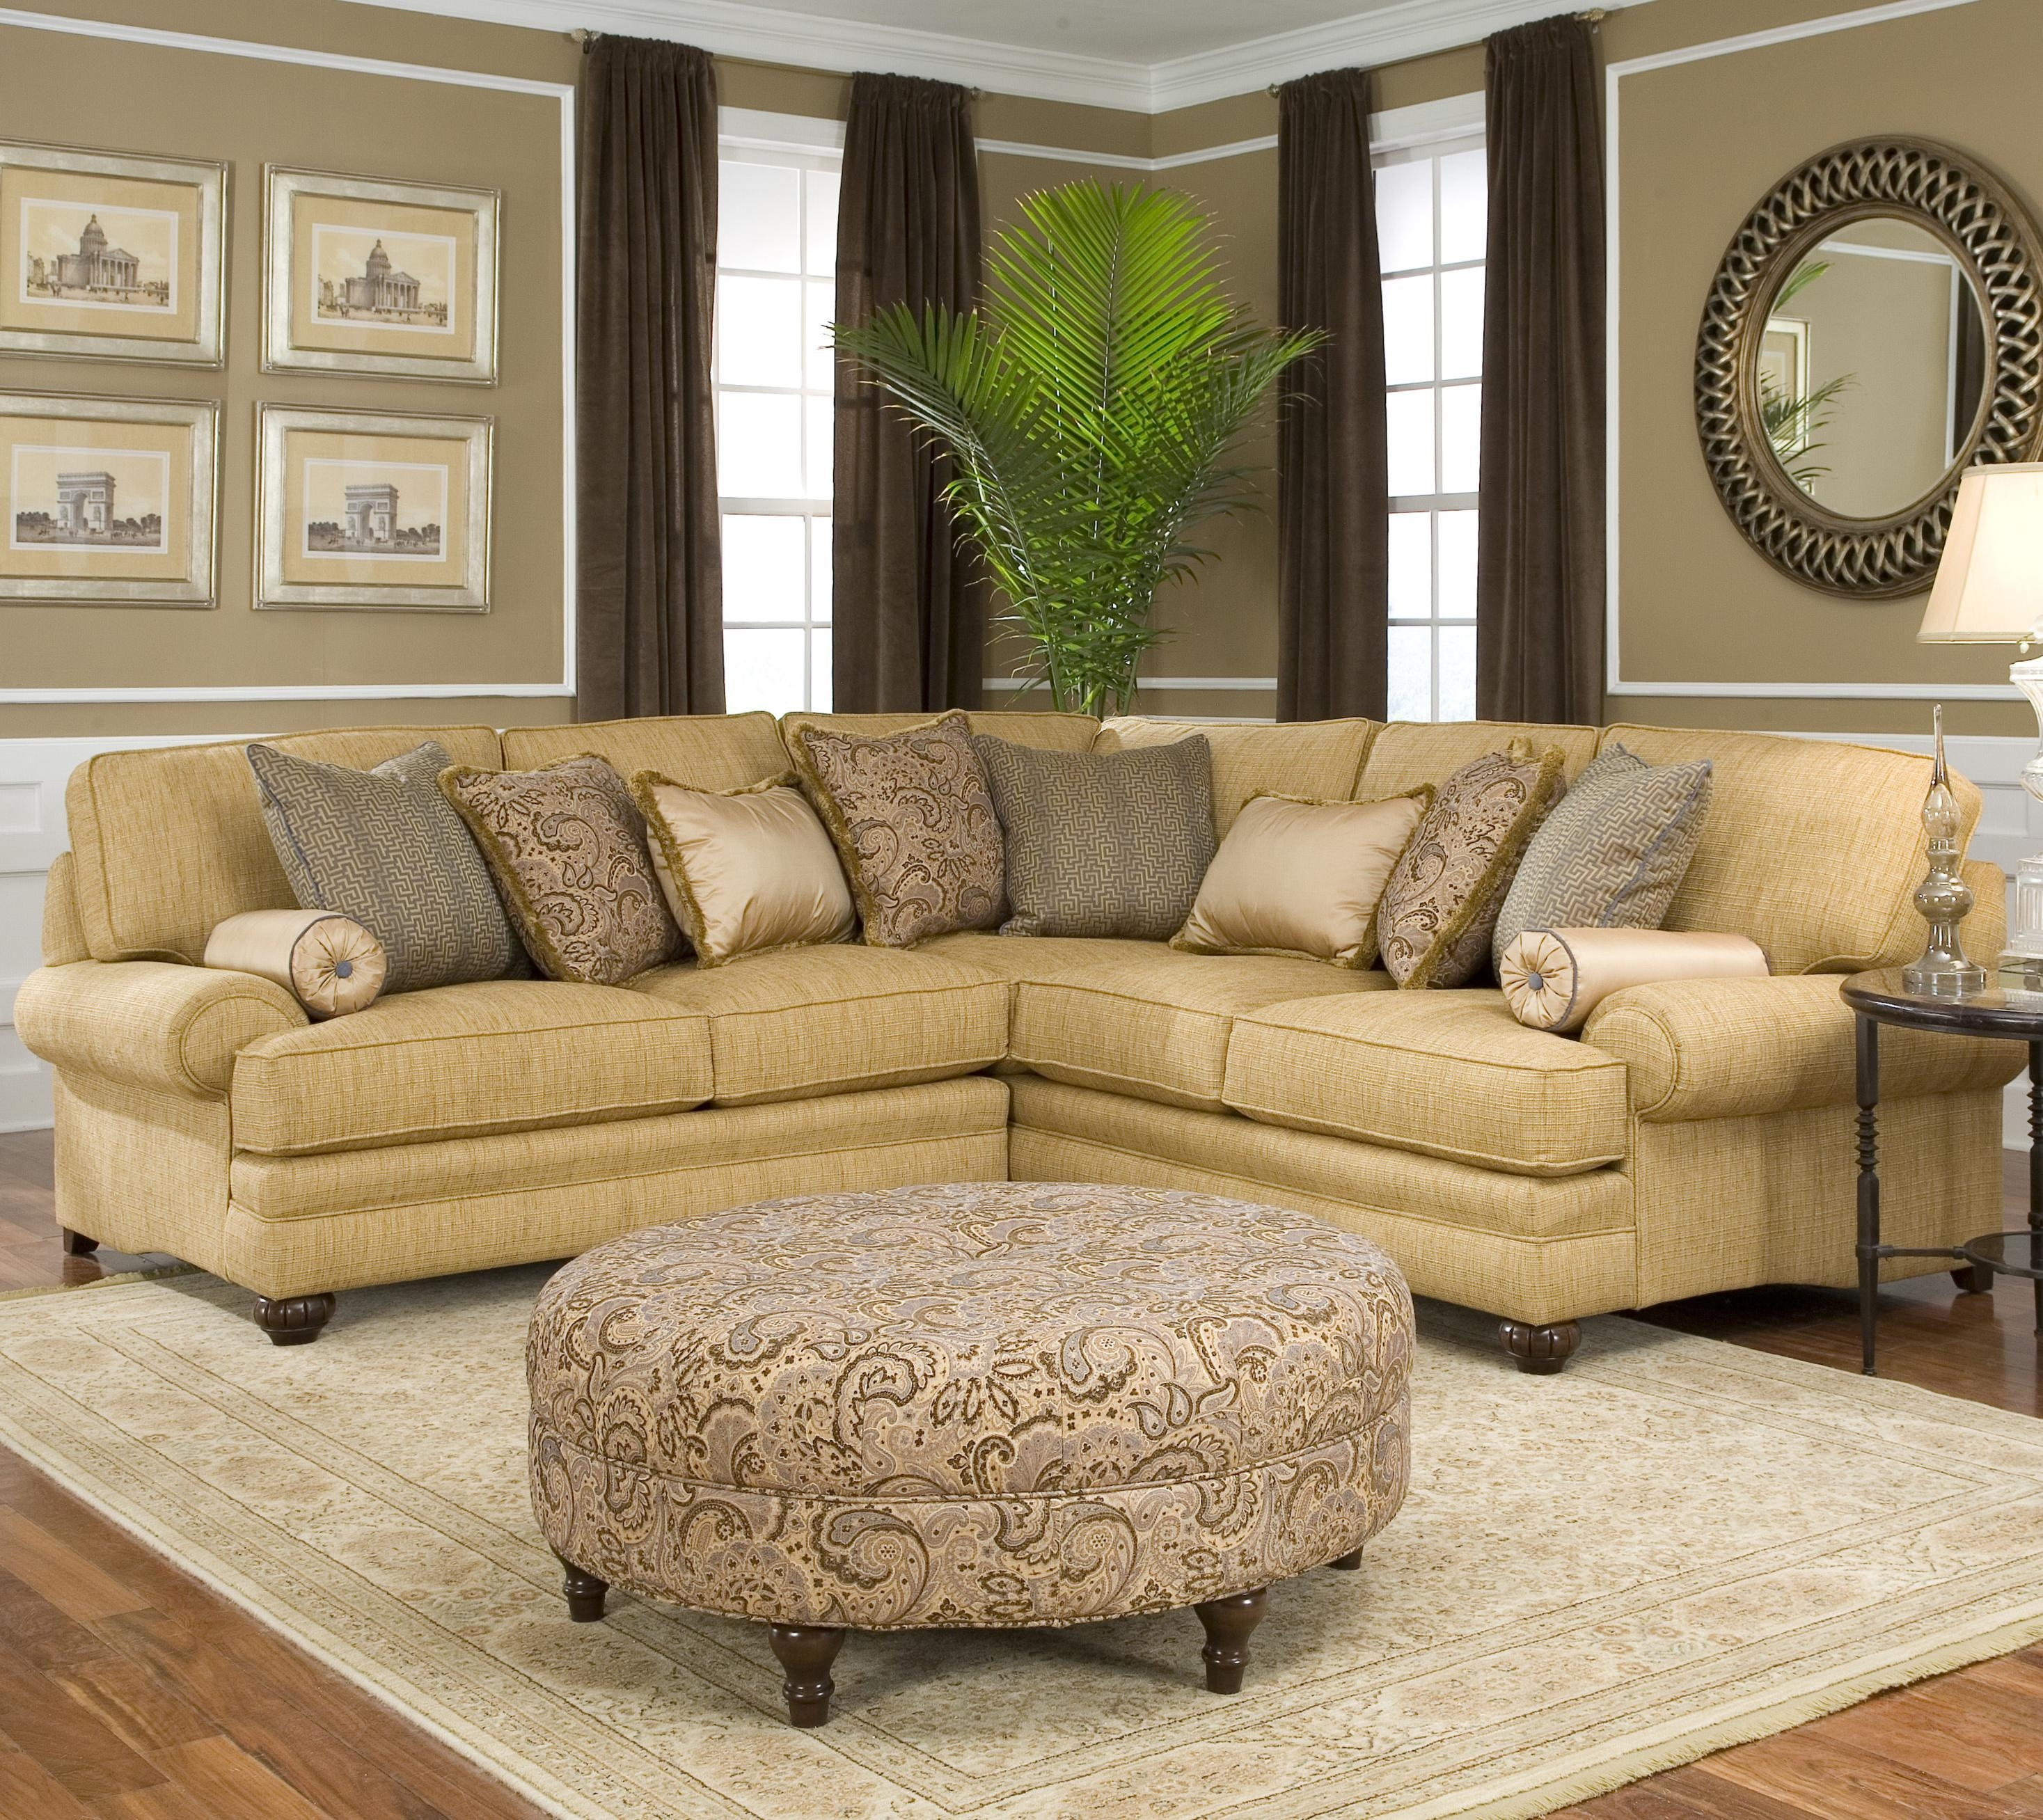 Traditional Styled Corner Sectional Sofasmith Brothers | Wolf For Smith Brothers Sofas (Image 20 of 20)